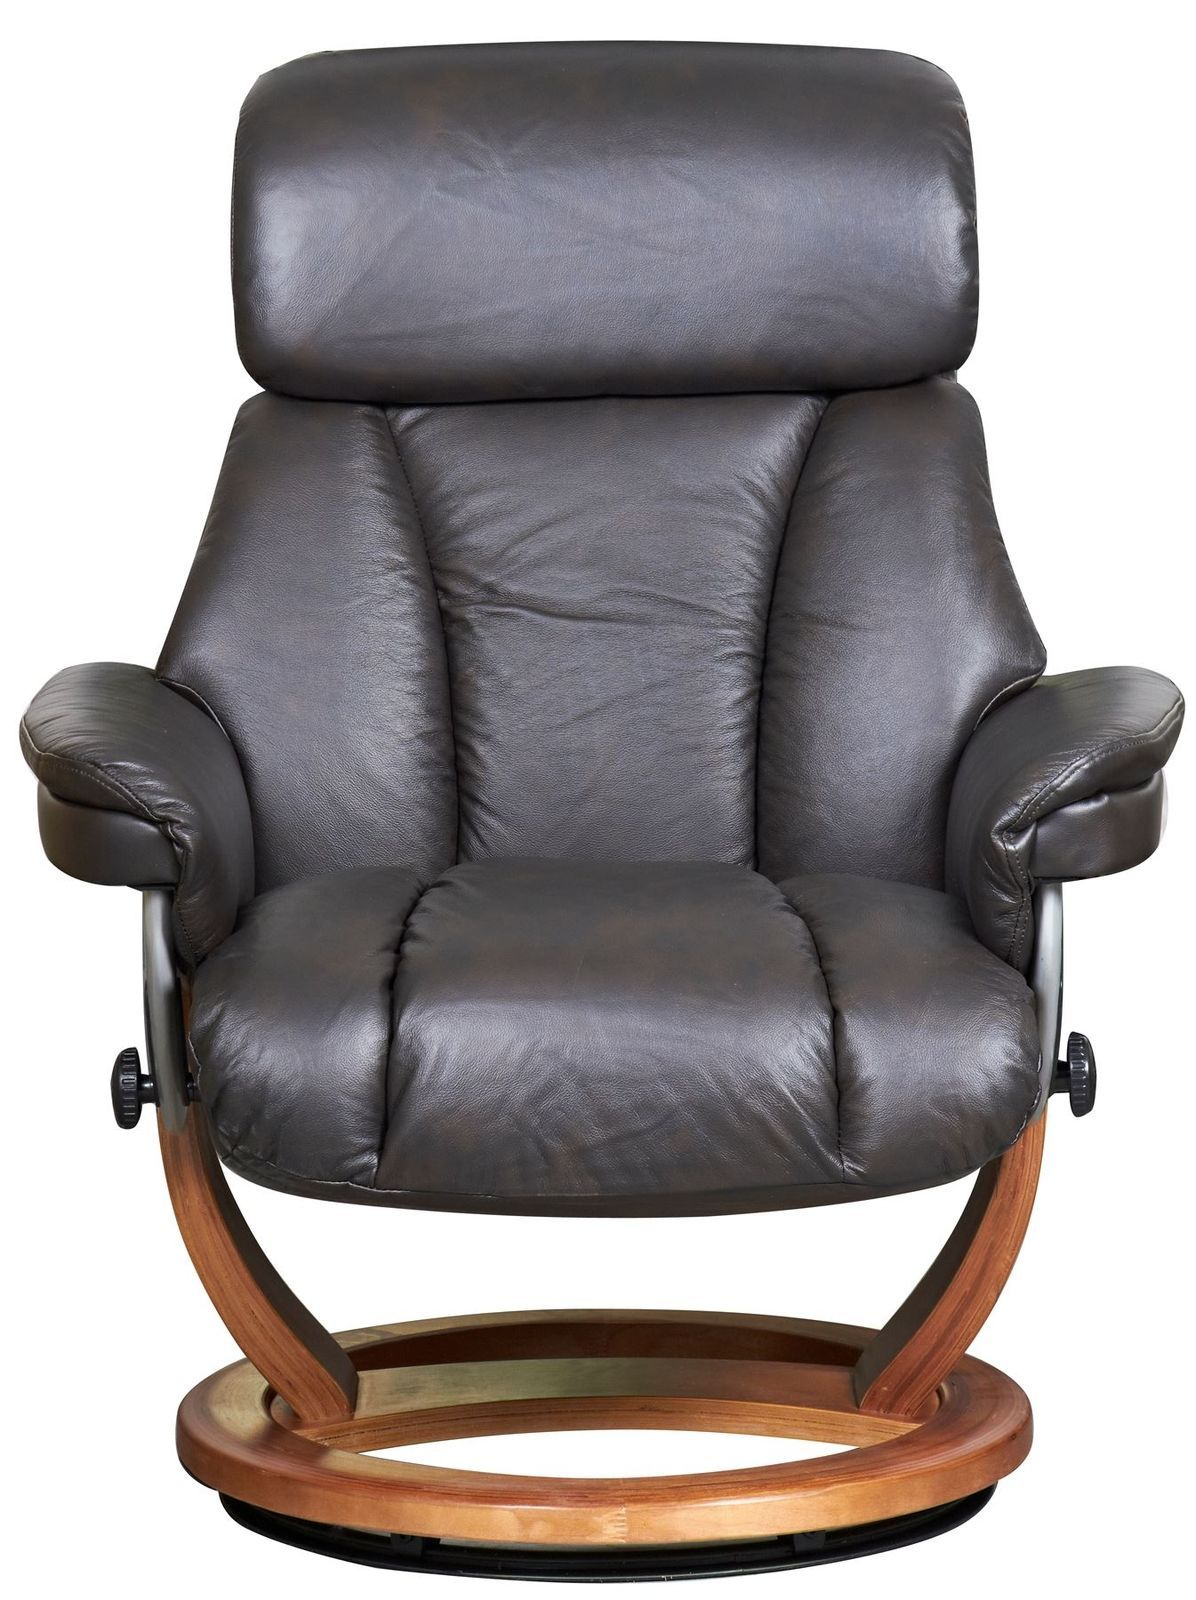 The Mars Genuine Leather Recliner & Footstool in Chocolate